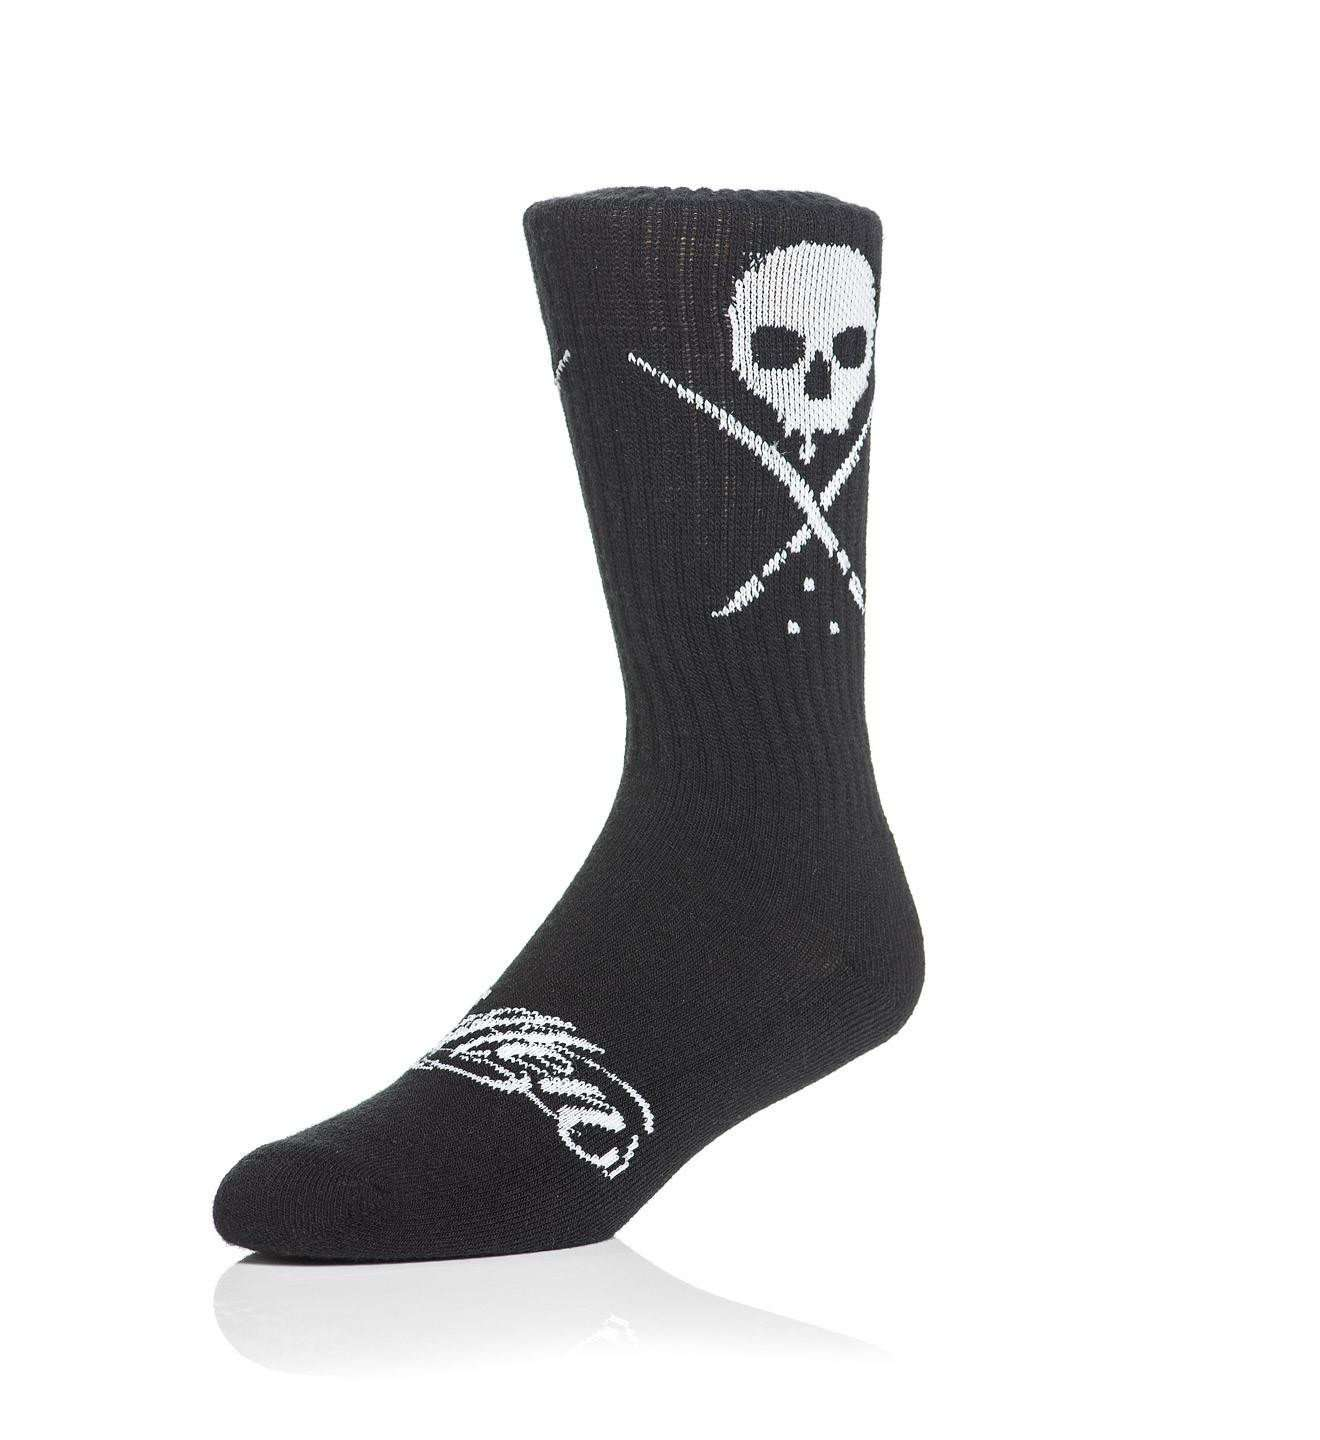 Standard Issue Socks Black/White